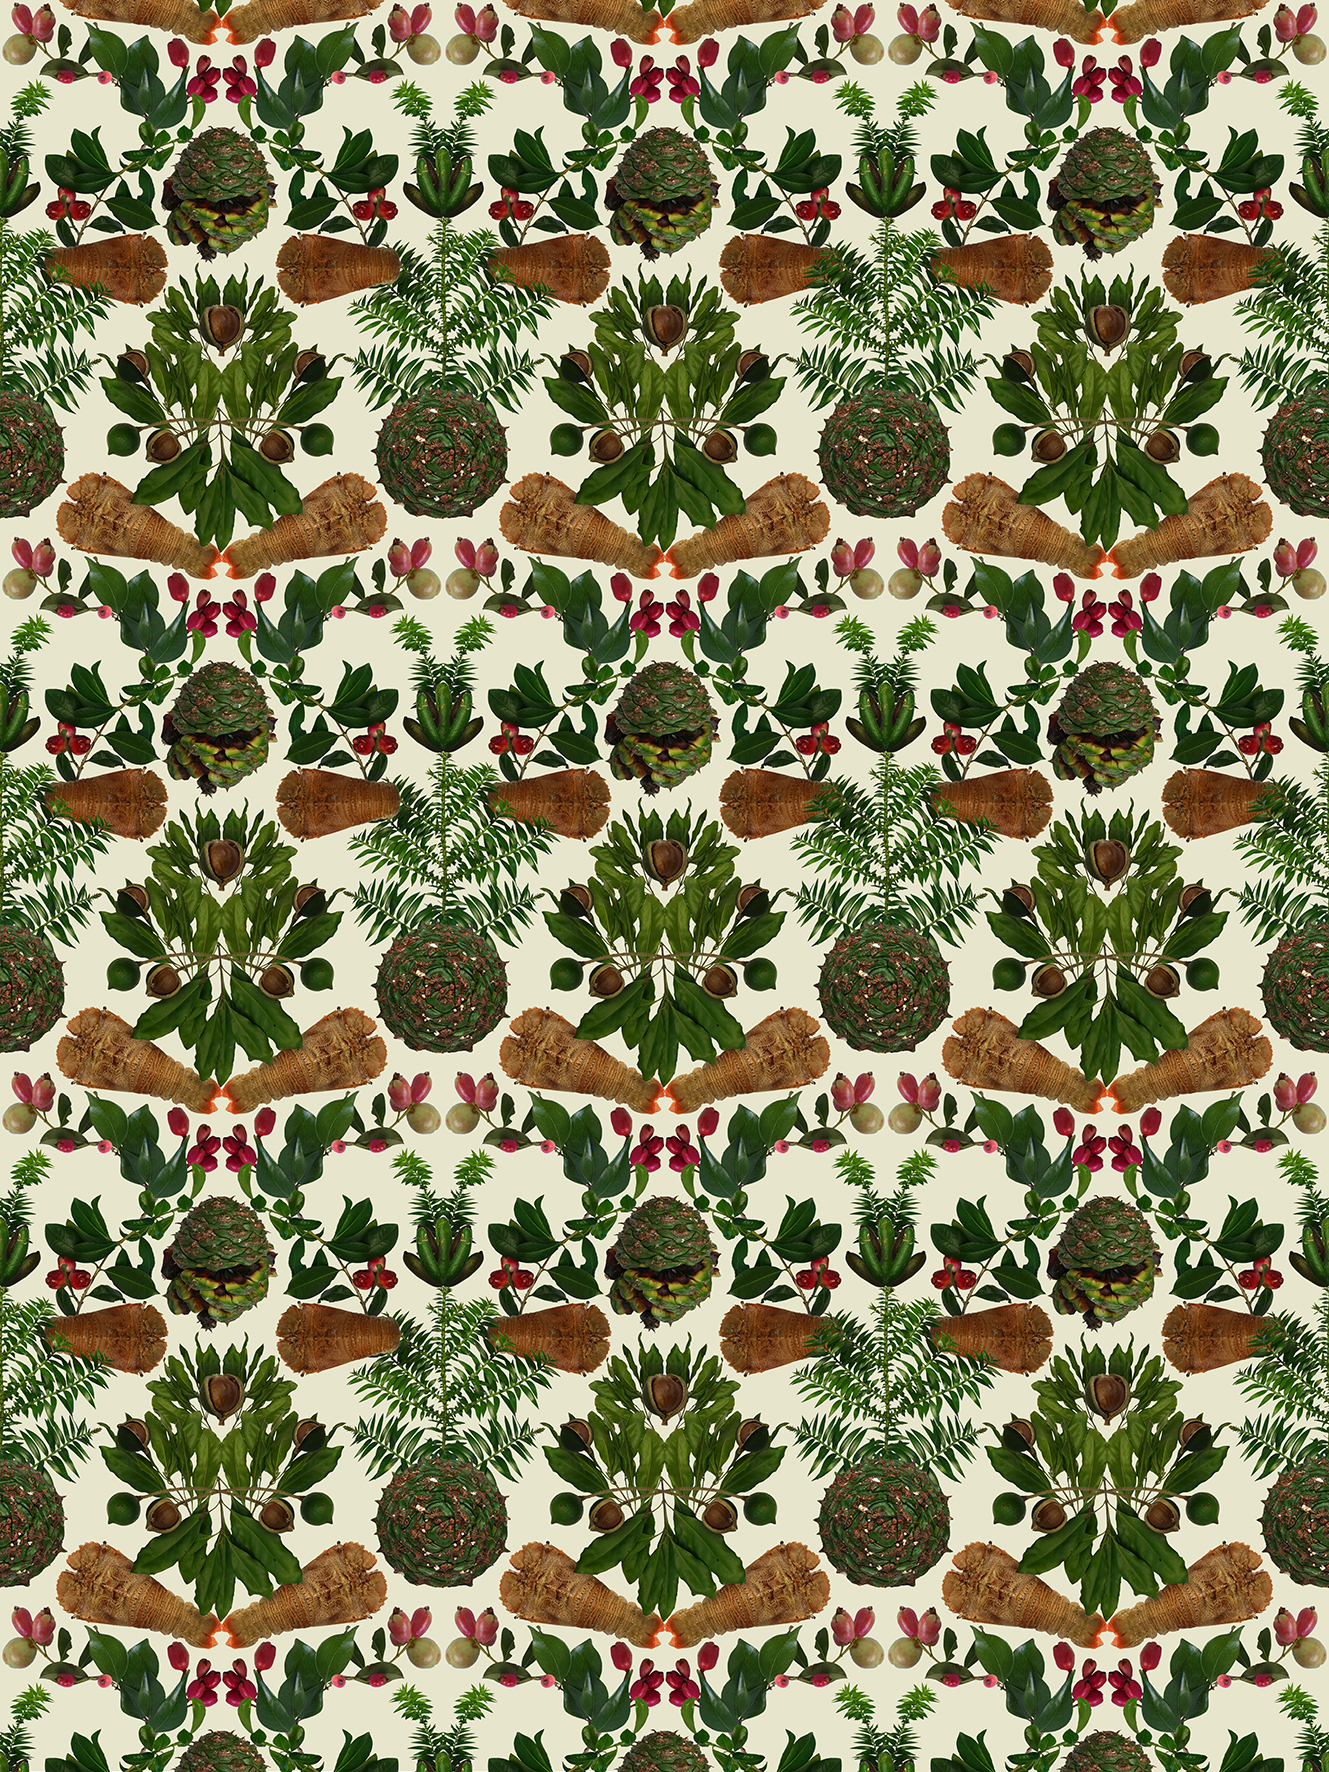 Strawberry Thief After William Morris Wallpaper Print